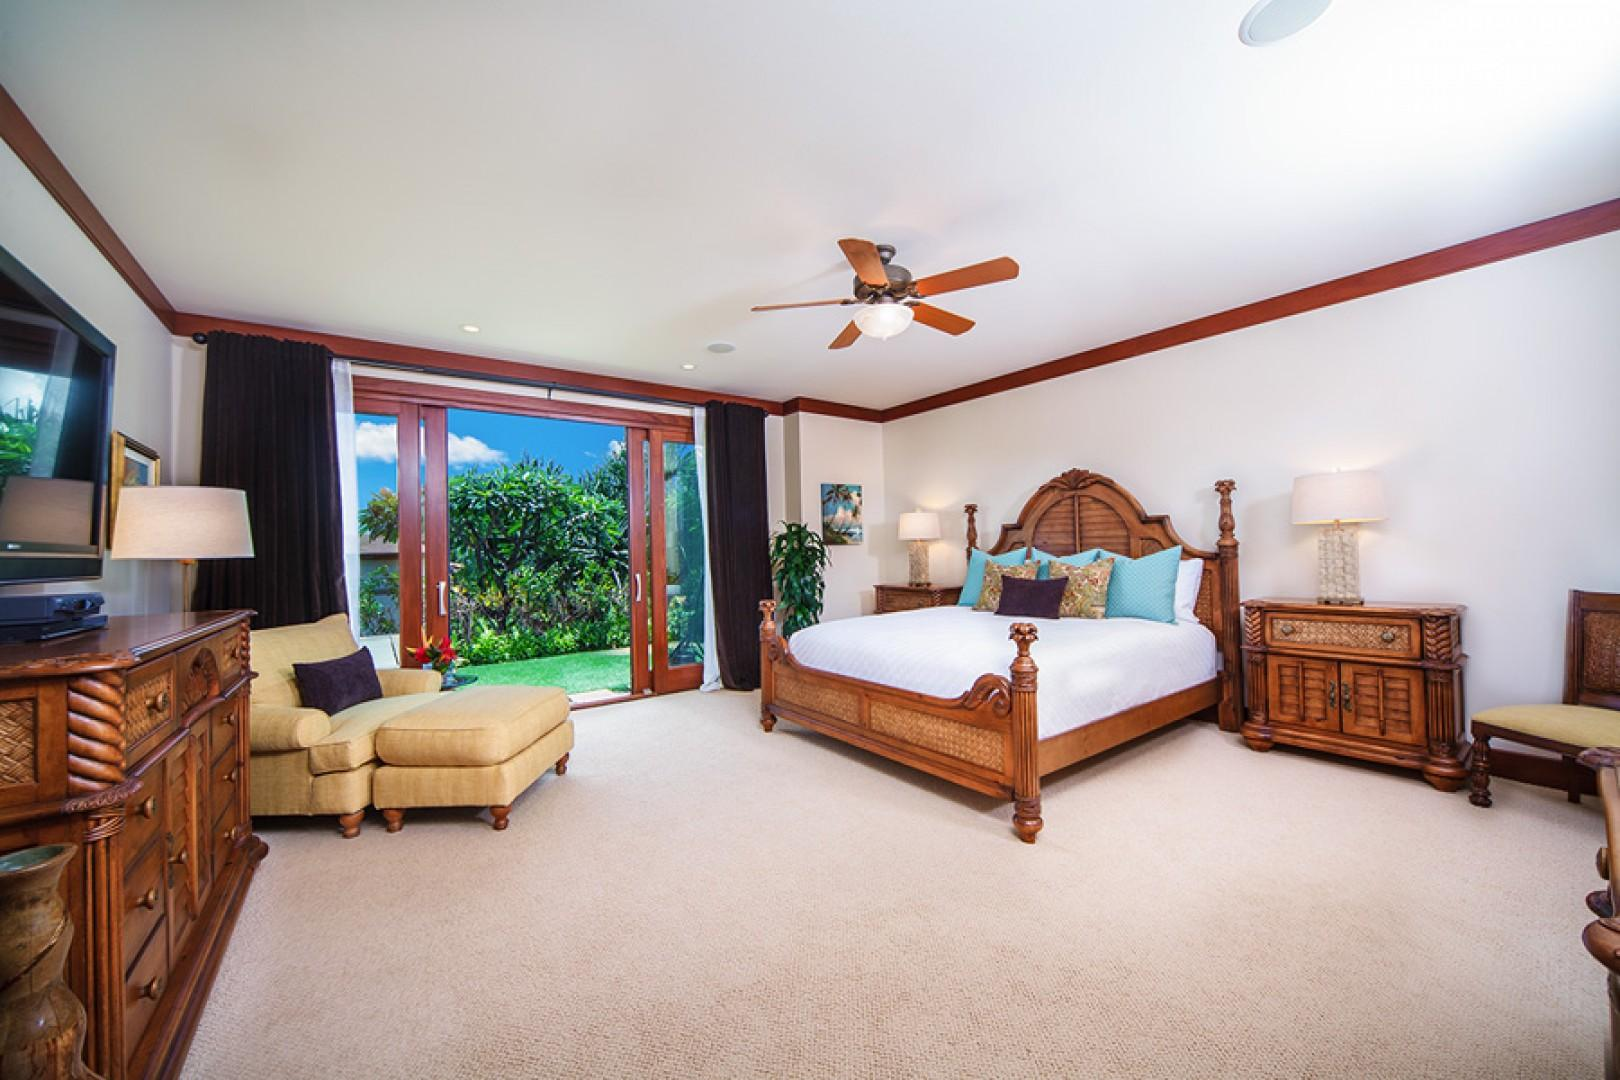 Master bedroom with king bed, en suite bath, and direct access to the plunge pool and garden.